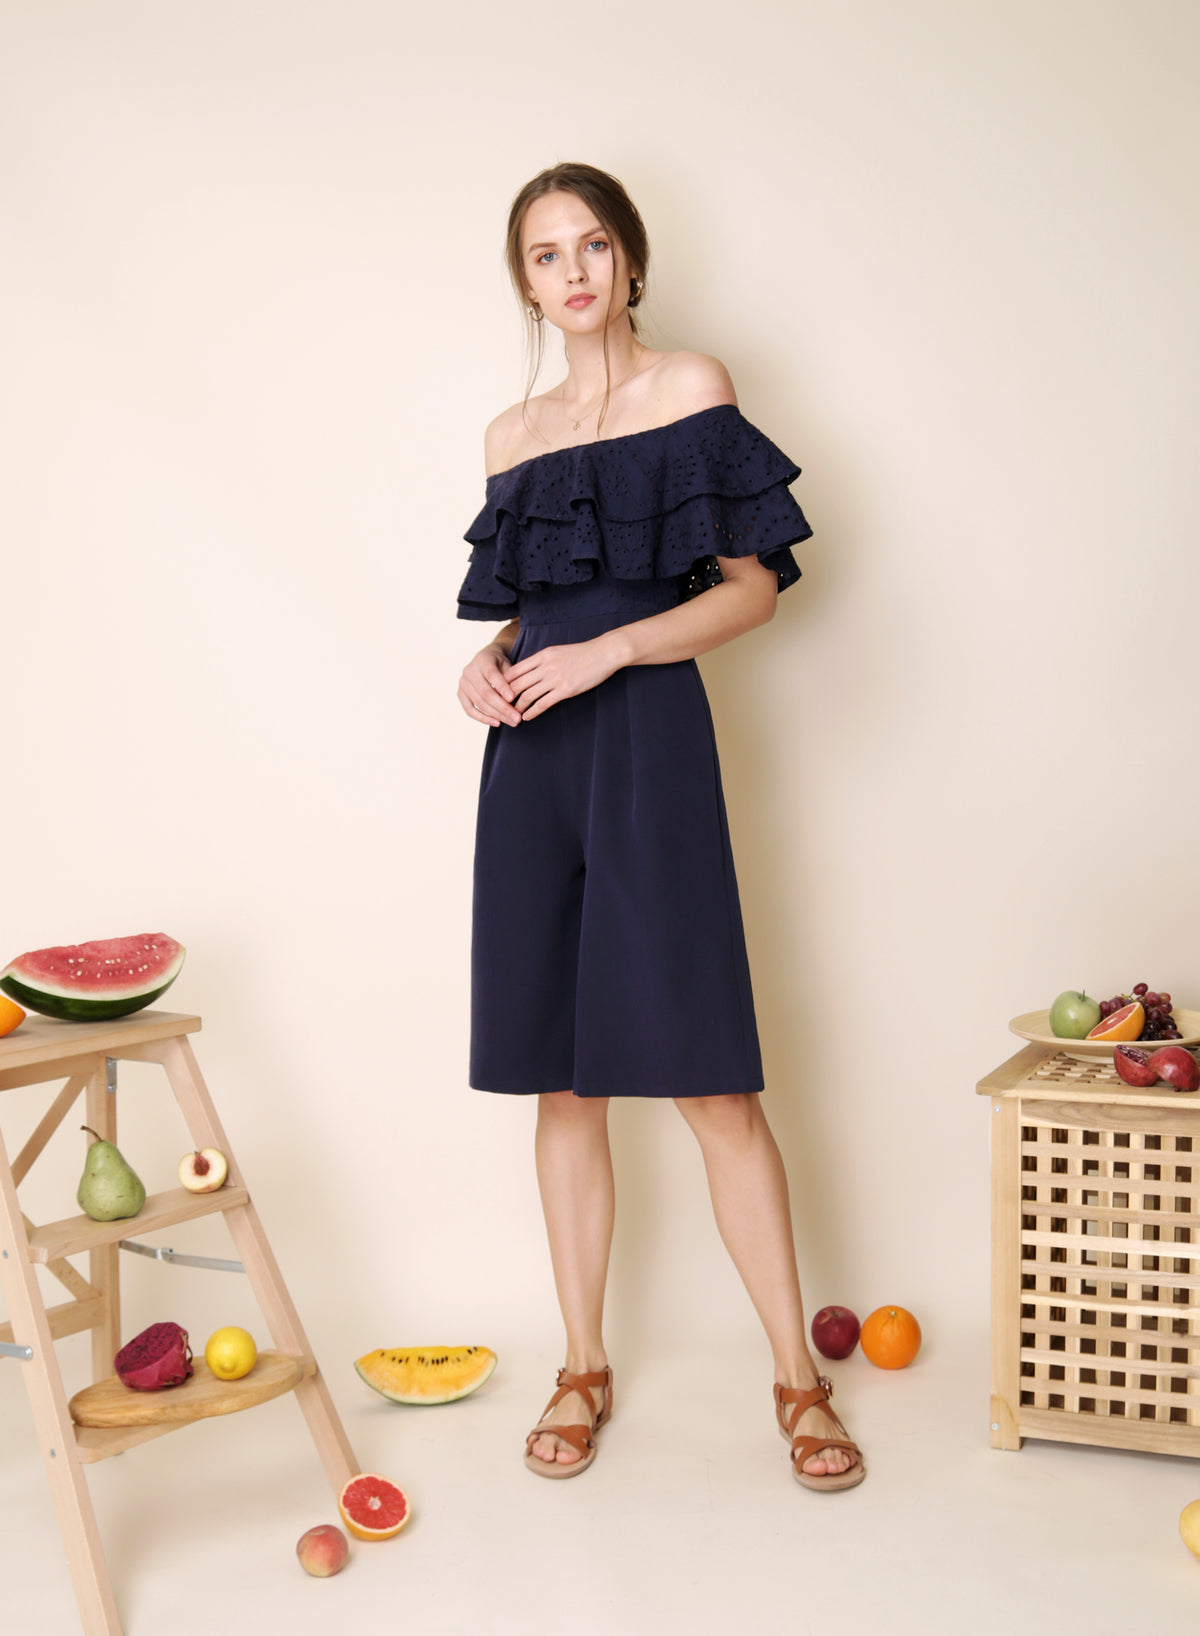 Infatuate Tiered Eyelet Jumpsuit (Navy) at $ 42.50 only sold at And Well Dressed Online Fashion Store Singapore